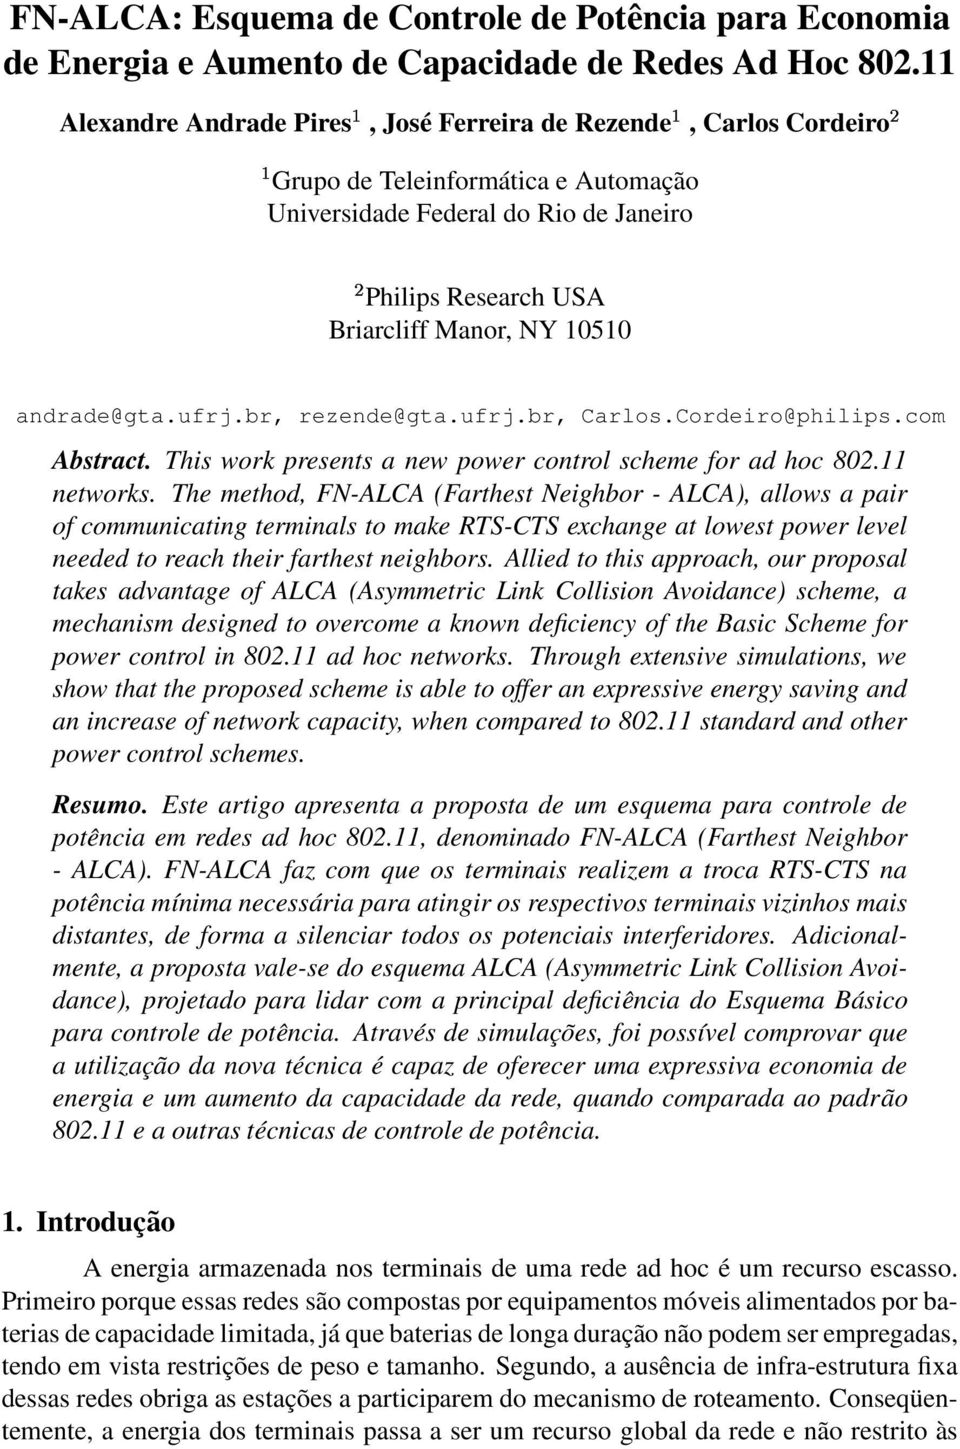 andrade@gta.ufrj.br, rezende@gta.ufrj.br, Carlos.Cordeiro@philips.com Abstract. This work presents a new power control scheme for ad hoc 802.11 networks.